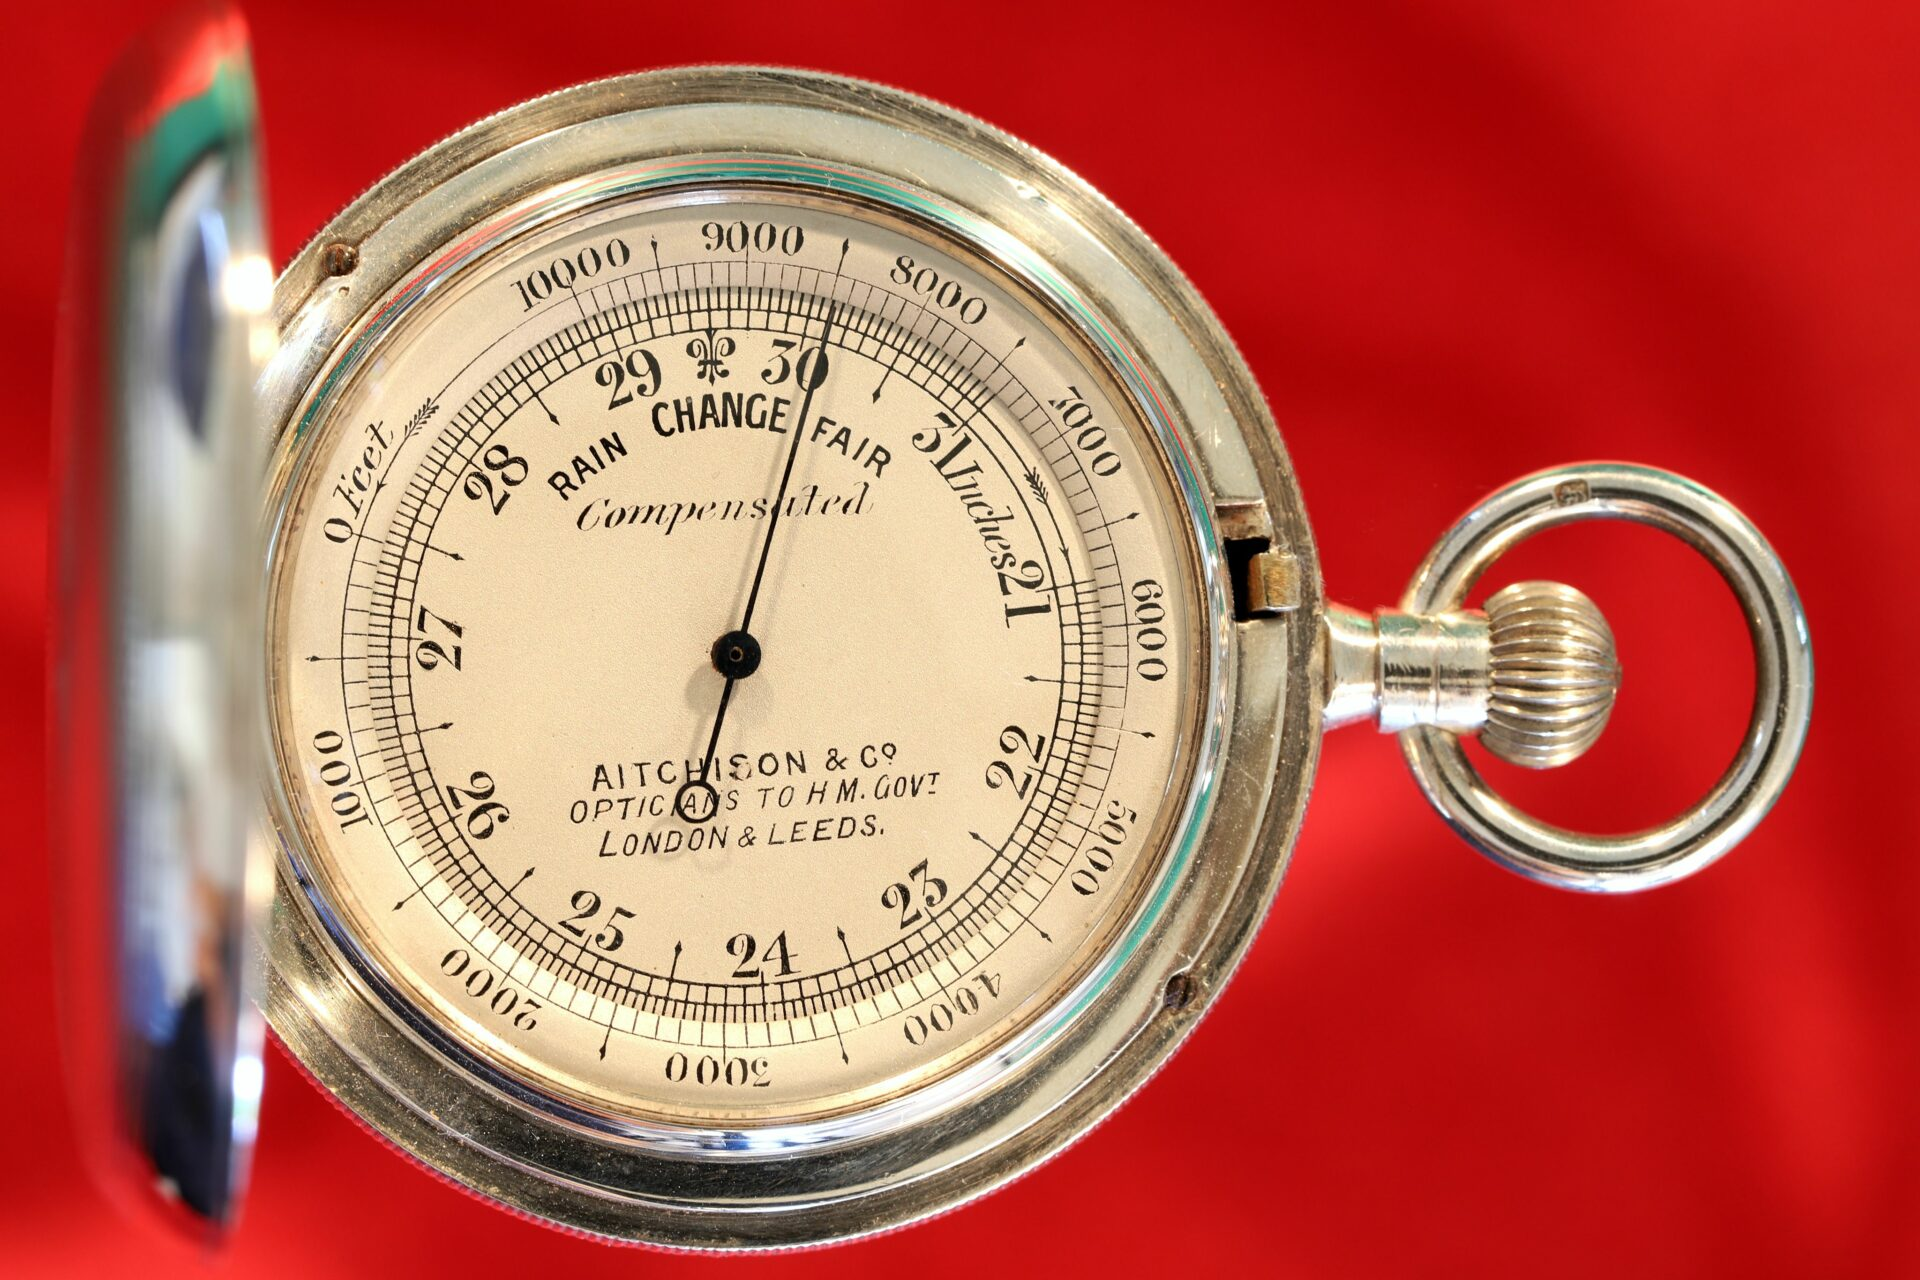 Image of dial of silver hunter cased pocket barometer in silver case by Albert Thomas Oliver, retailed by Aitchison & Co c1905